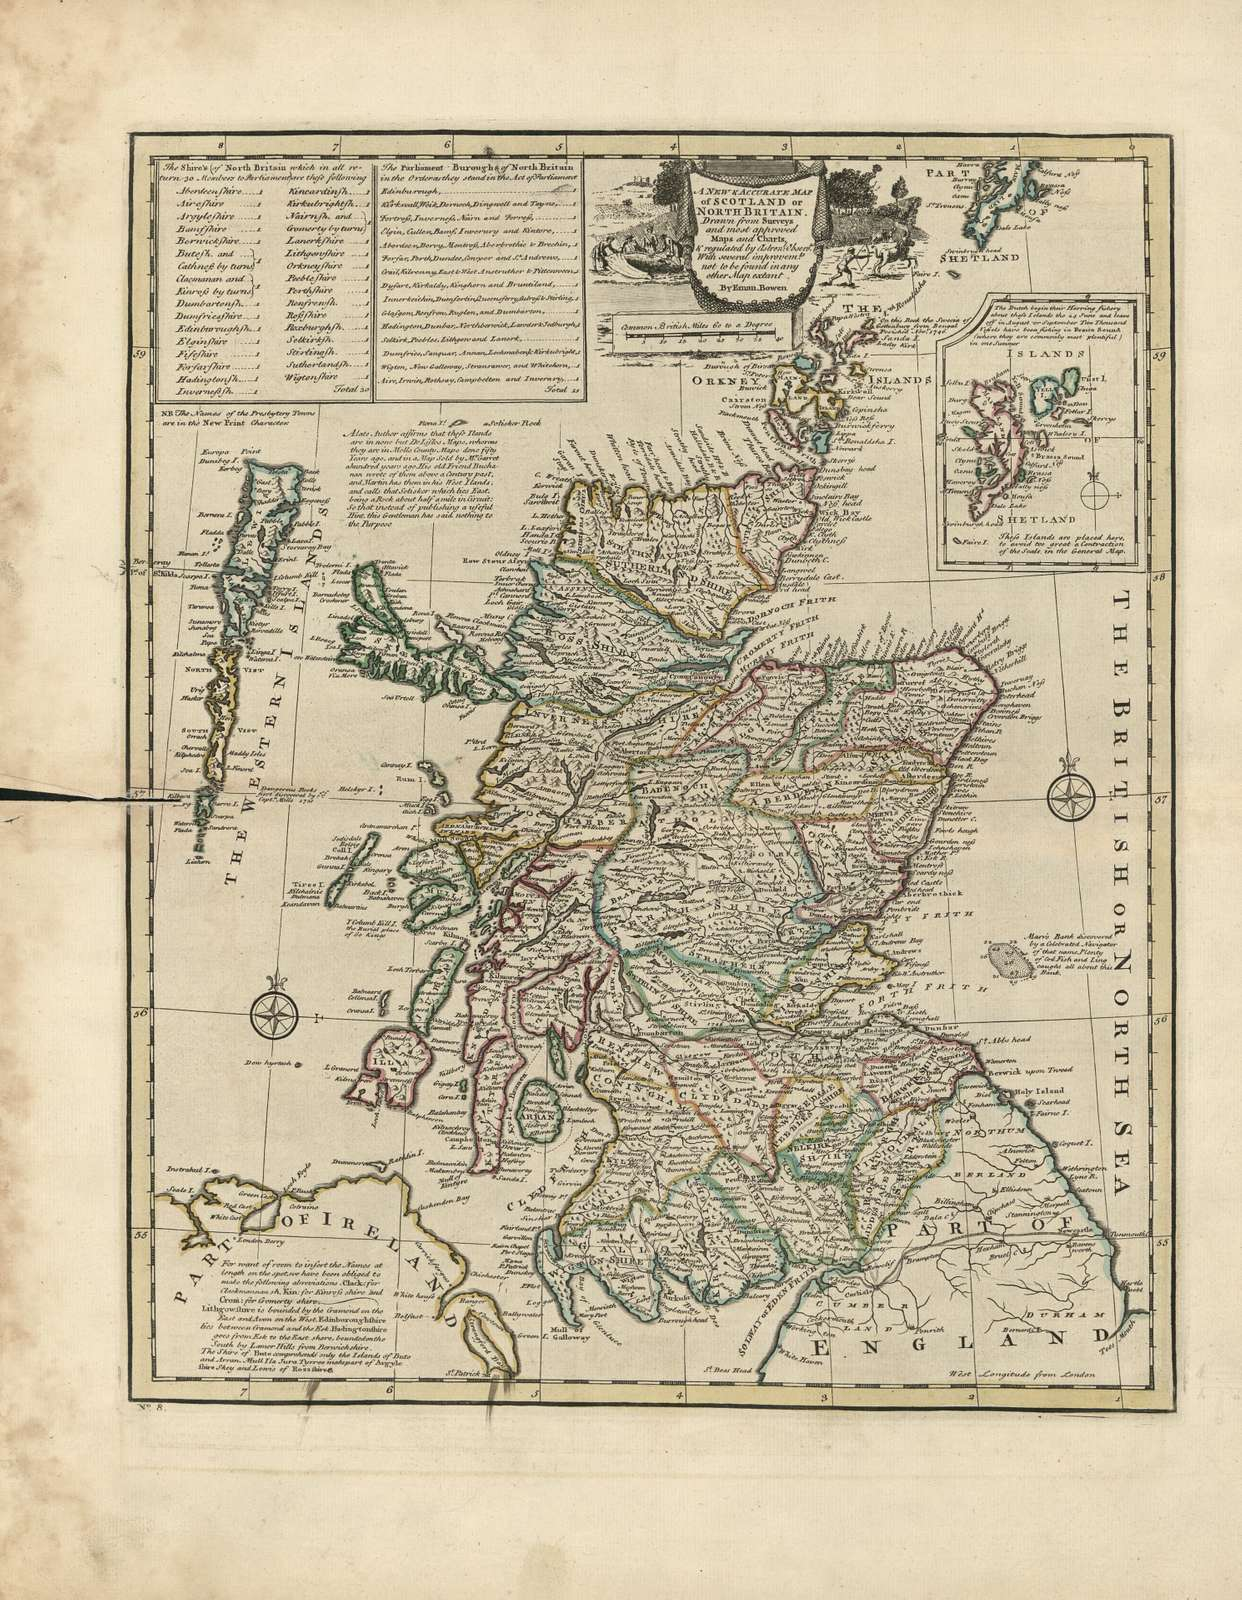 A new & accurate map of Scotland or North Britain : drawn from surveys and most approved maps and charts & regulated by astronom'l observ's : with several improvm'ts not to be found in any other map extant /